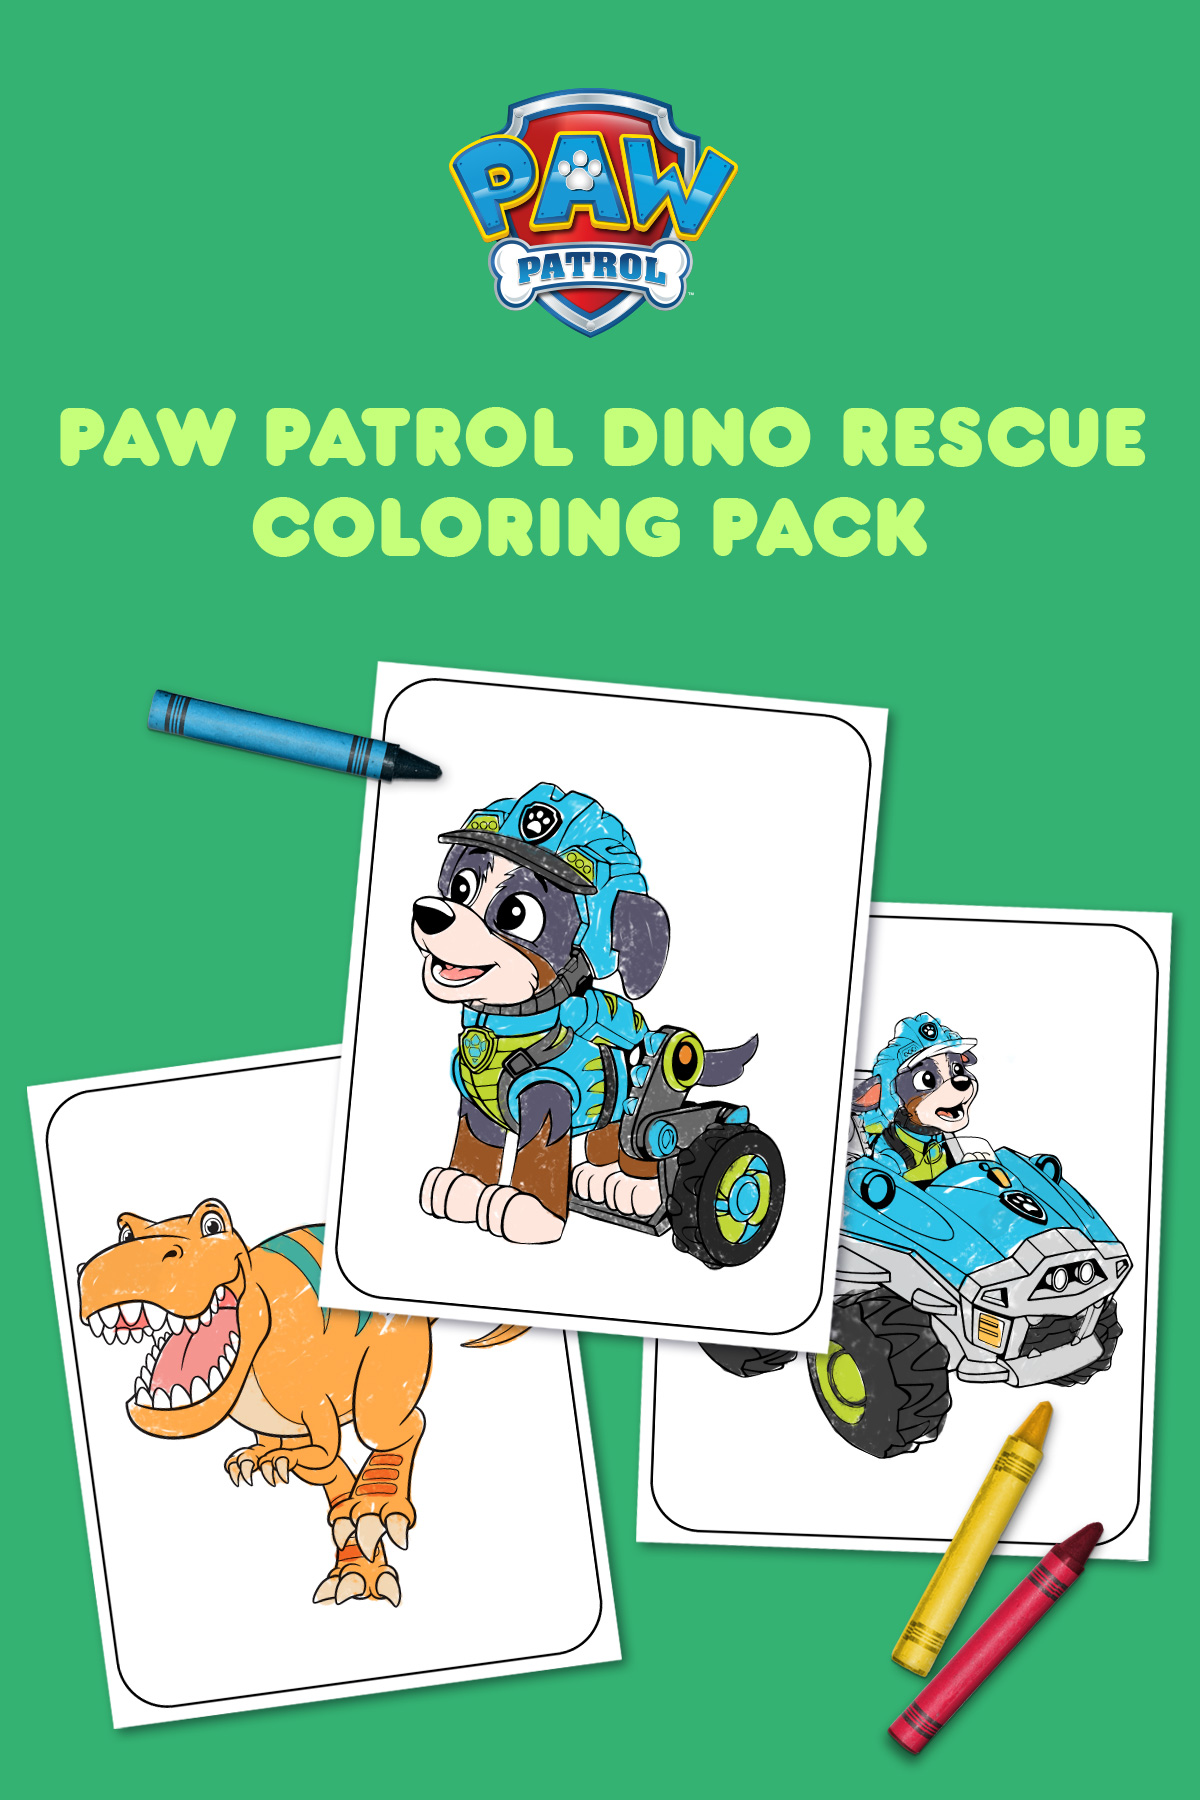 Print This! PAW Patrol Dino Rescue Coloring Pack   Nickelodeon Parents